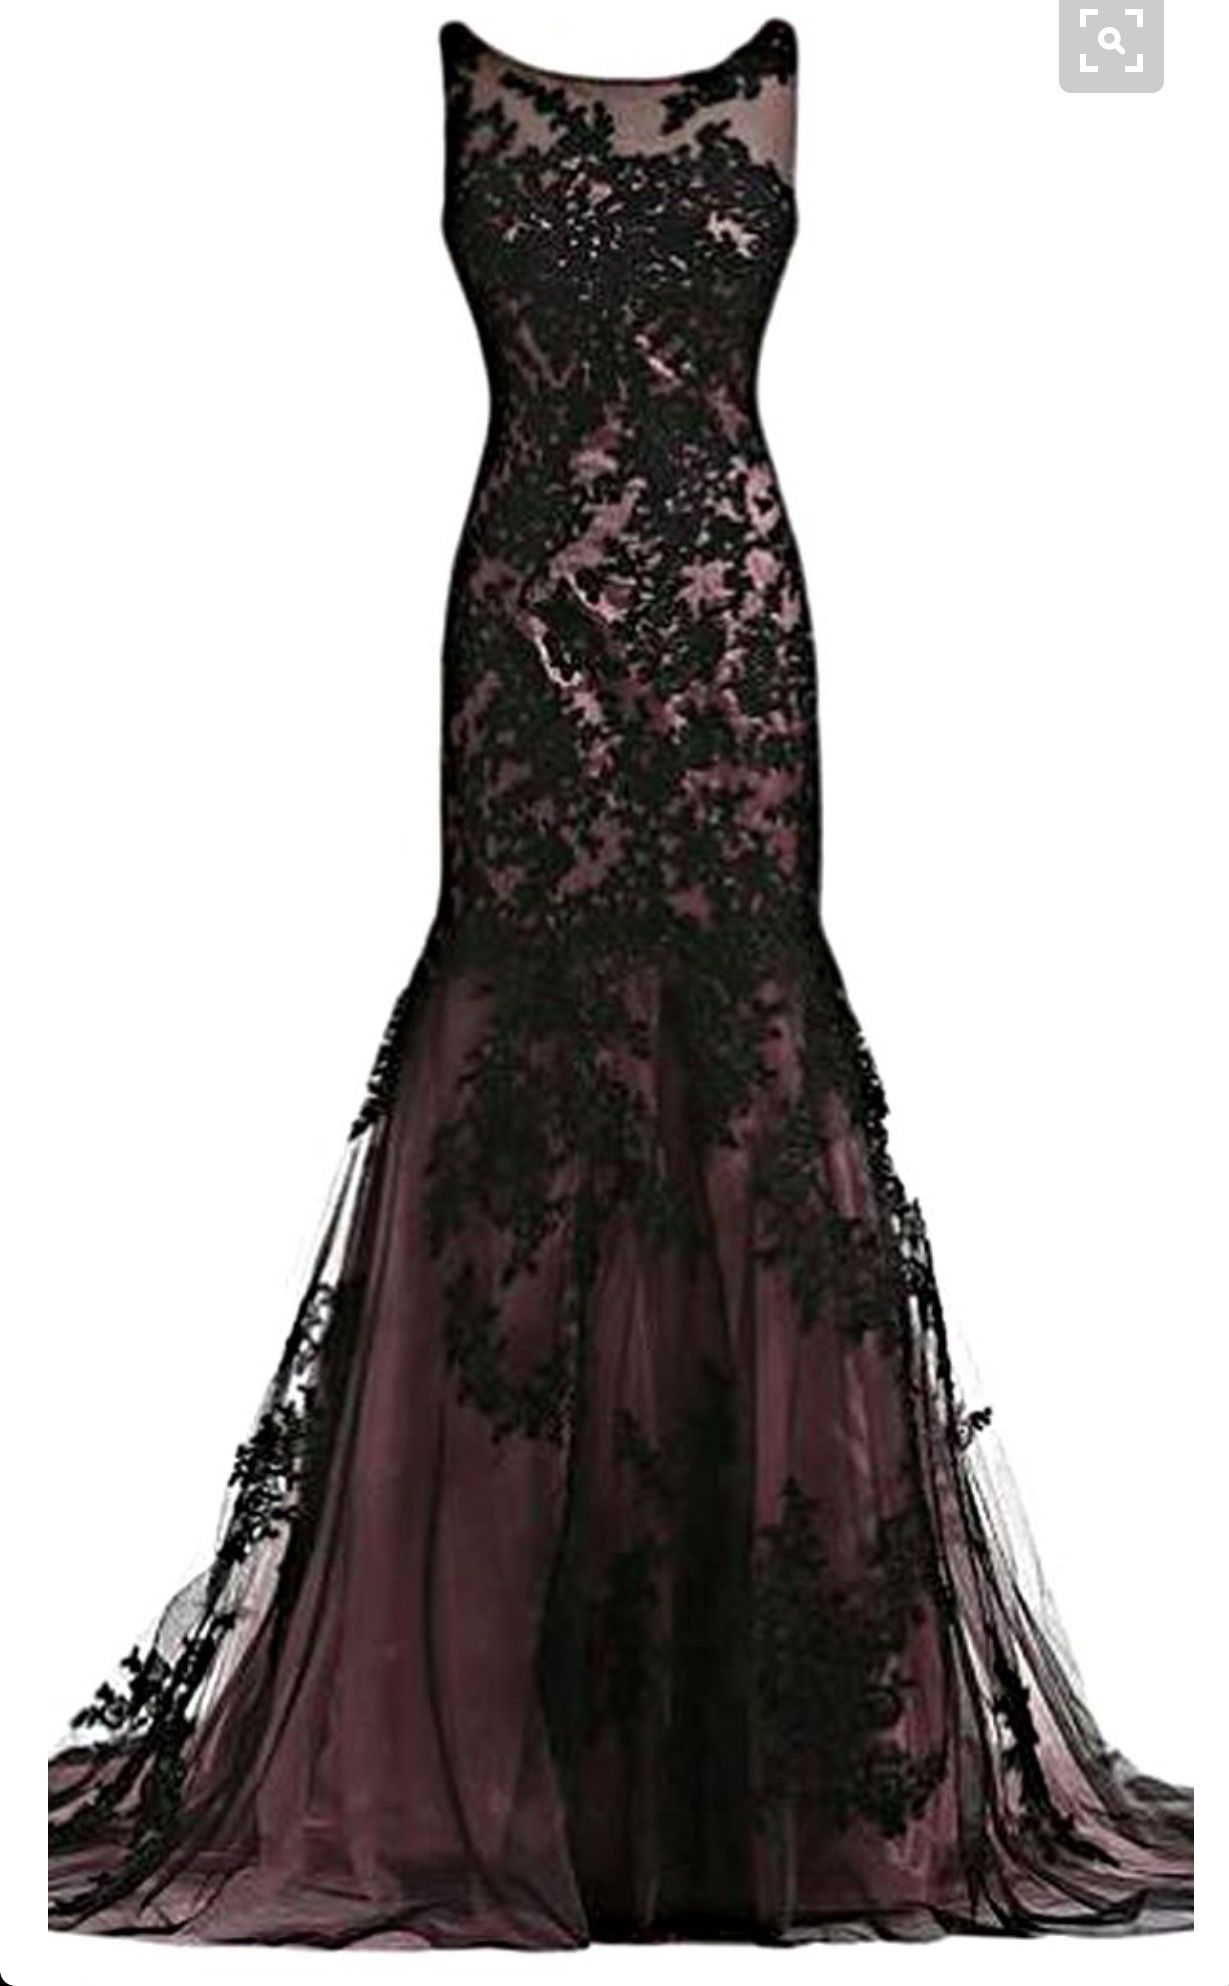 Stunning lace gown rose under party dresses pinterest gowns